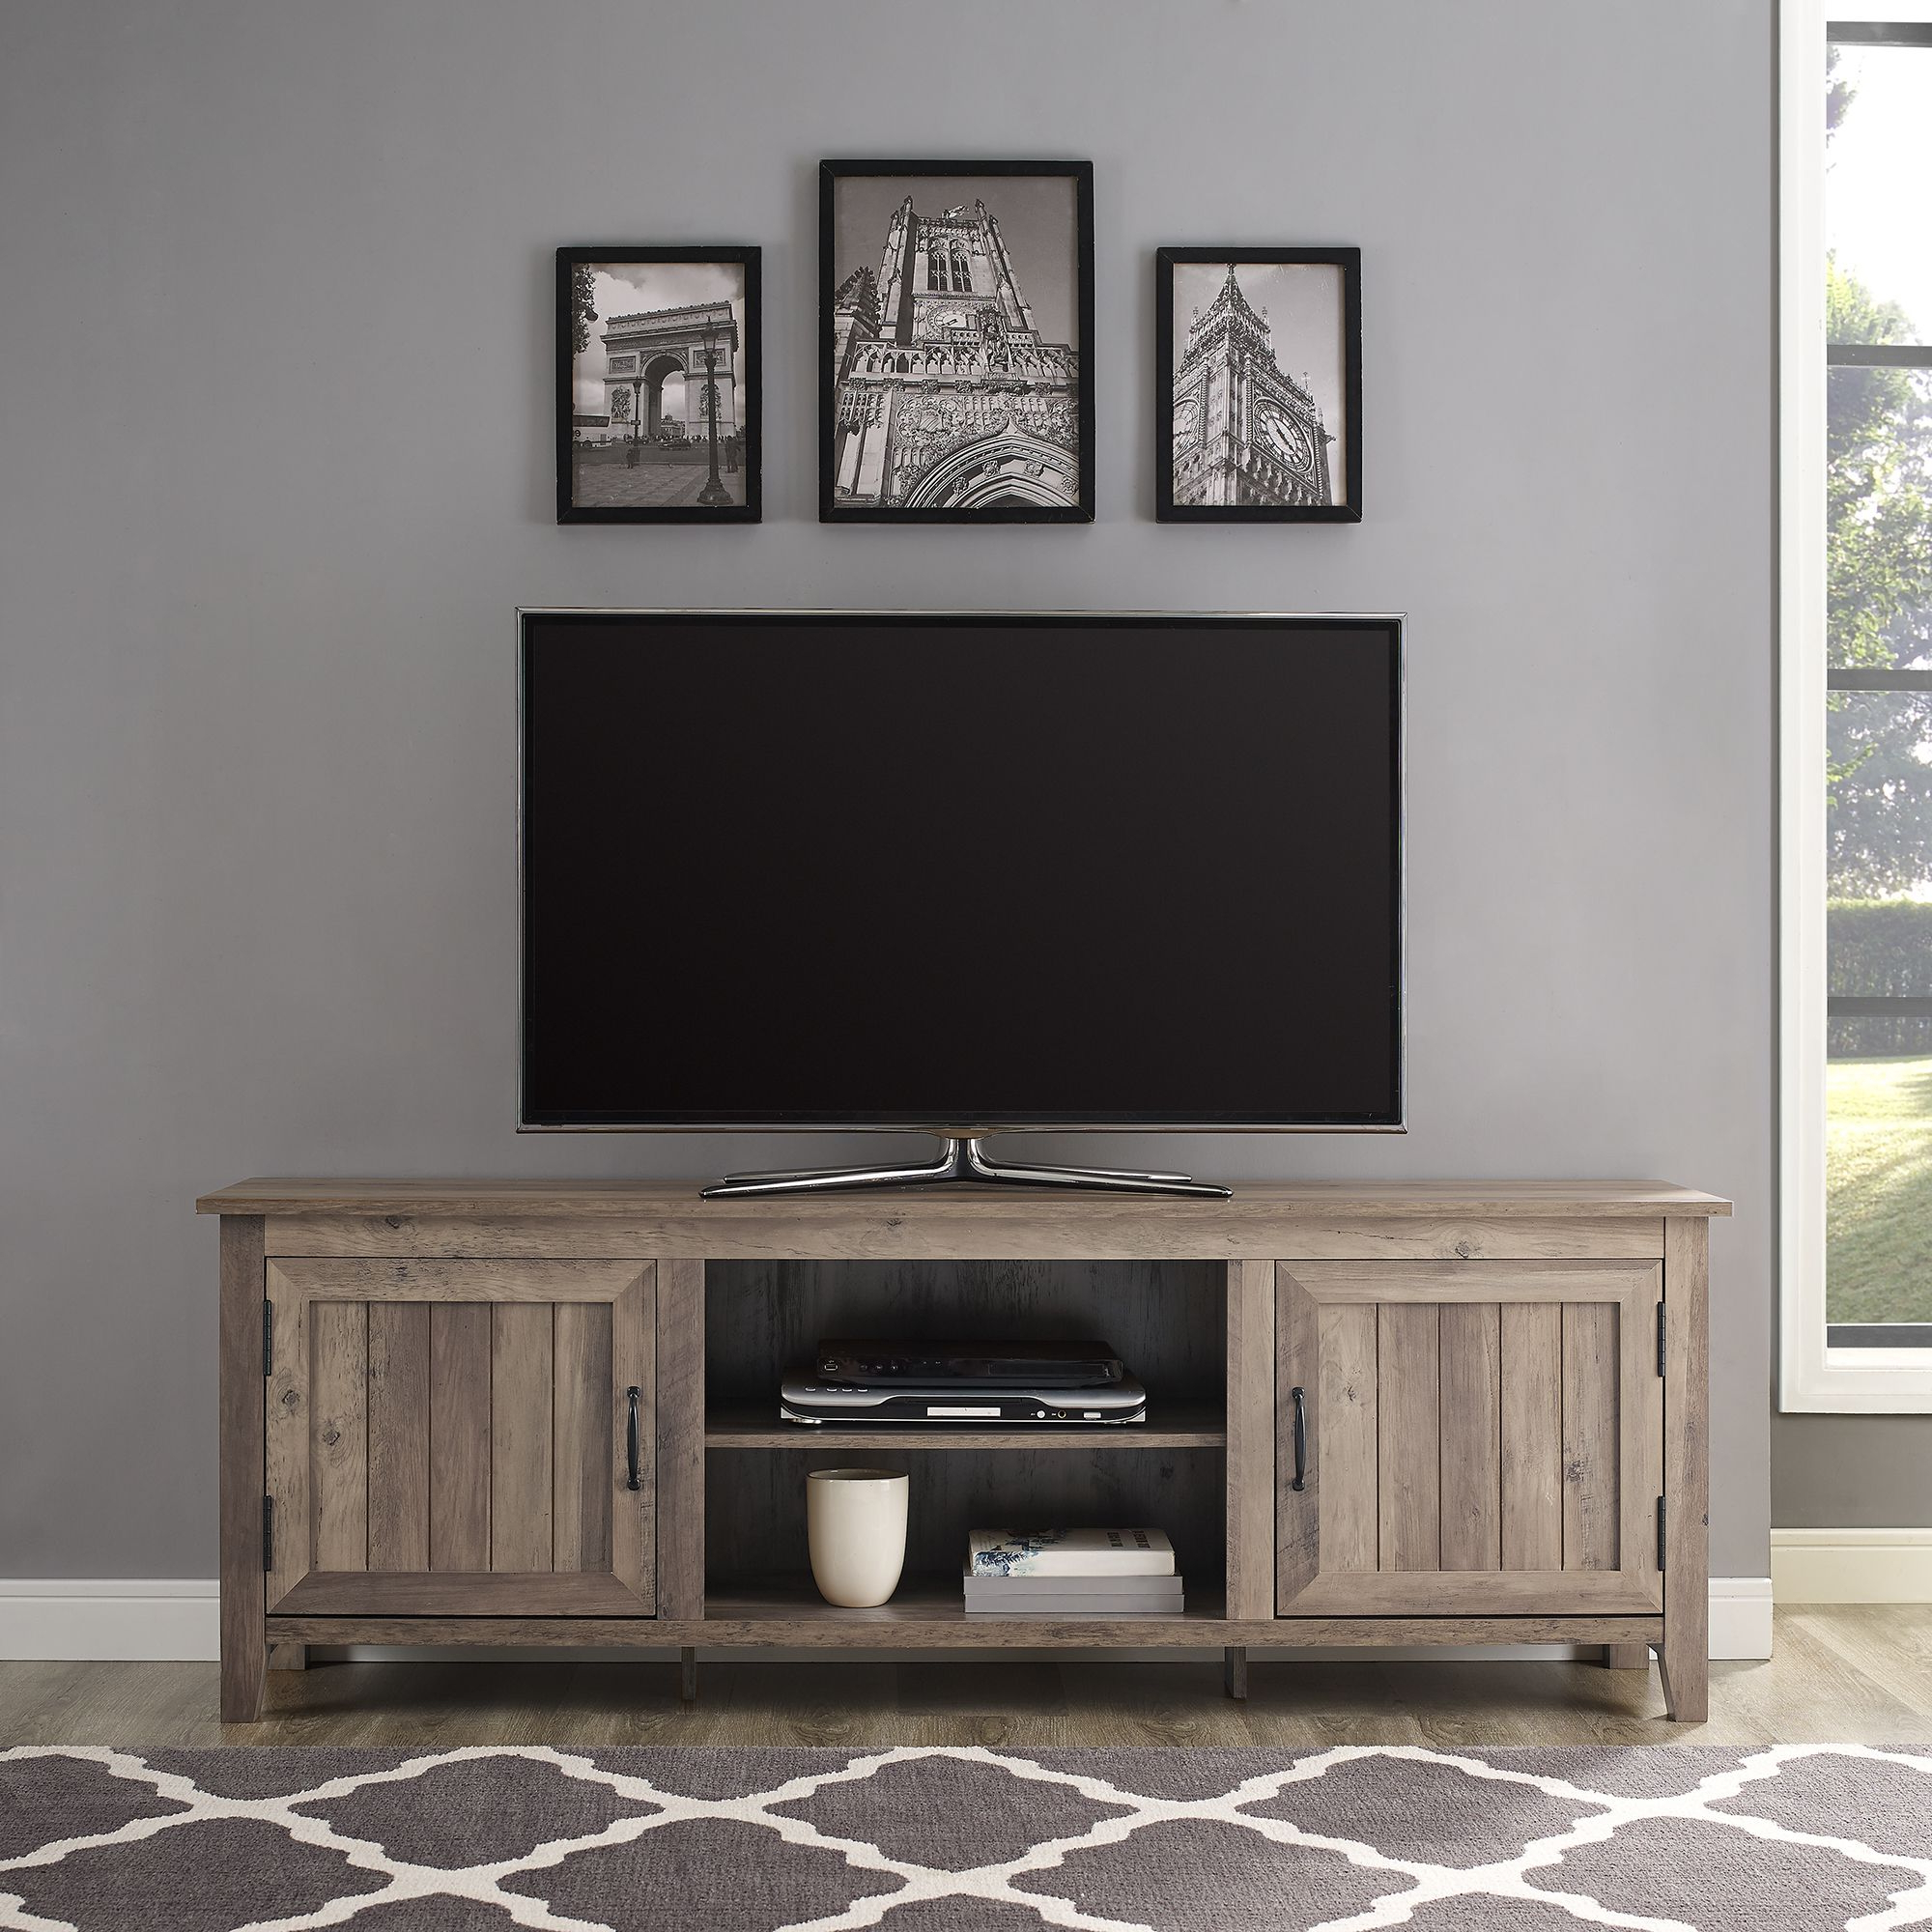 Woven Paths Farmhouse Grooved Door Tv Stand For Tvs Up To Regarding Woven Paths Farmhouse Barn Door Tv Stands In Multiple Finishes (View 4 of 20)